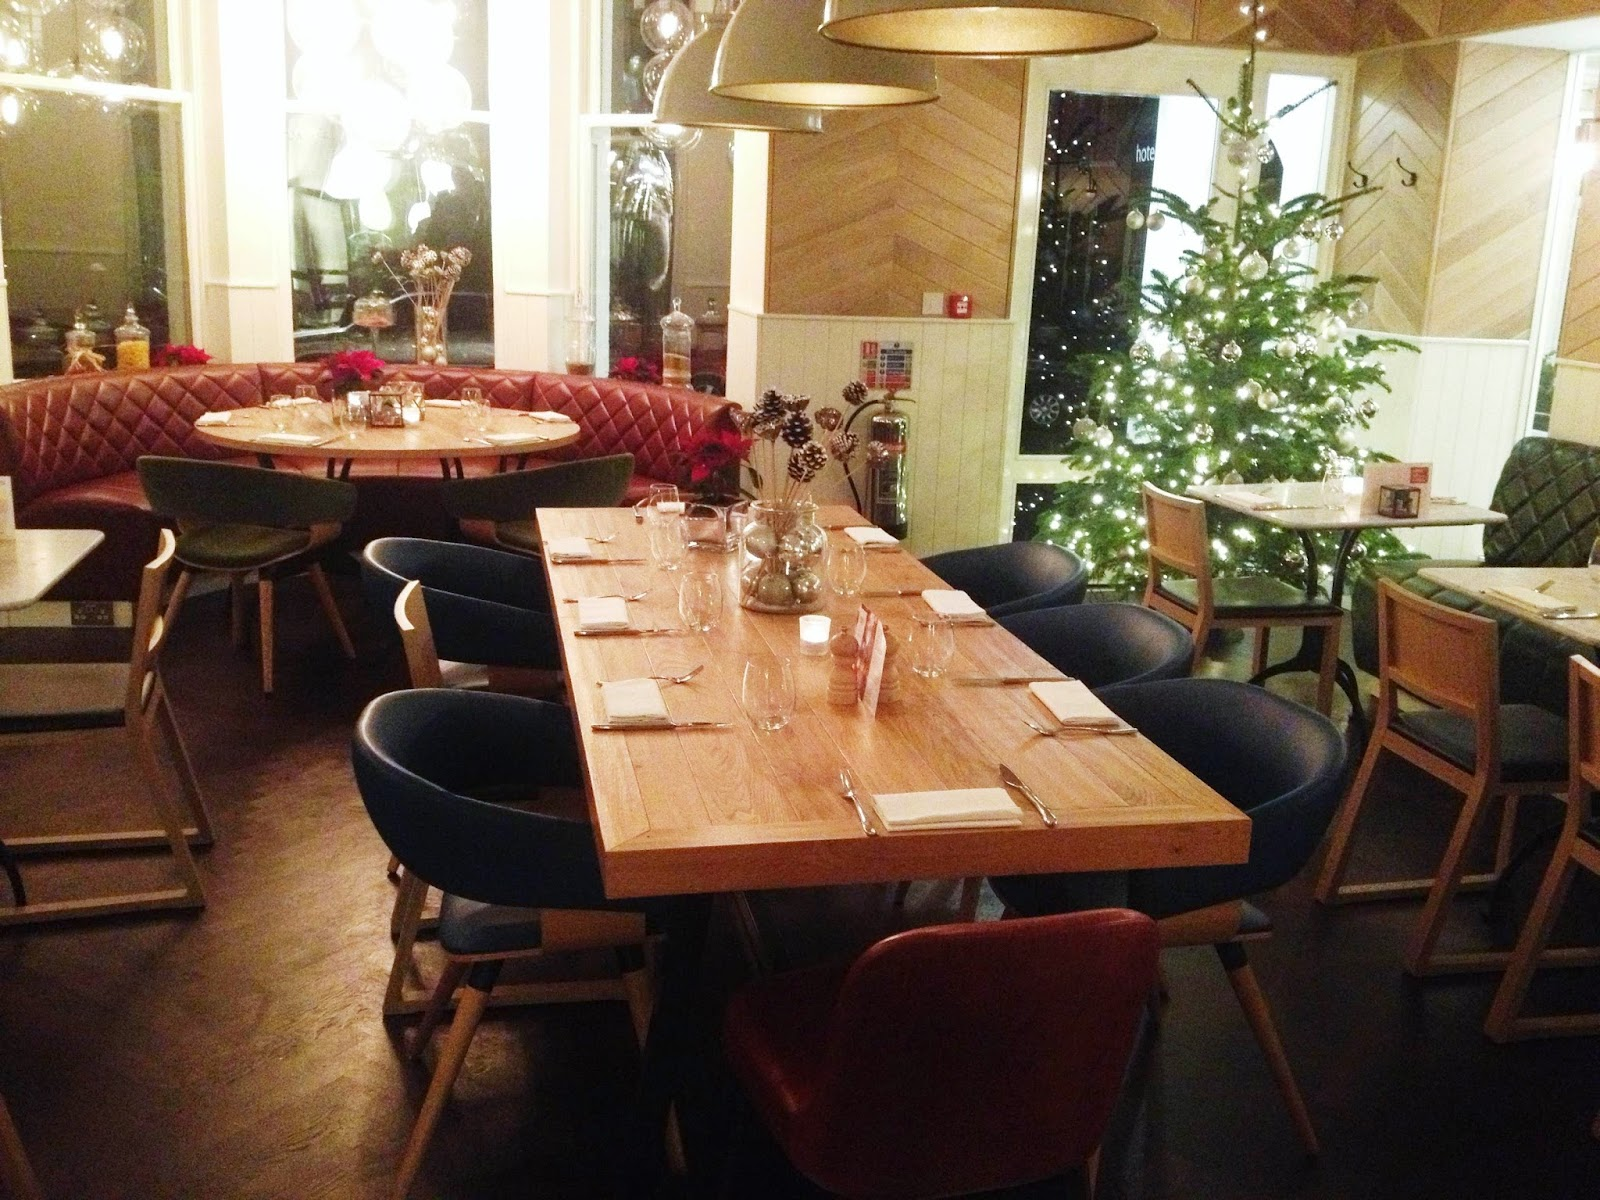 Kensington Quarter restaurant, Earl's Court, London